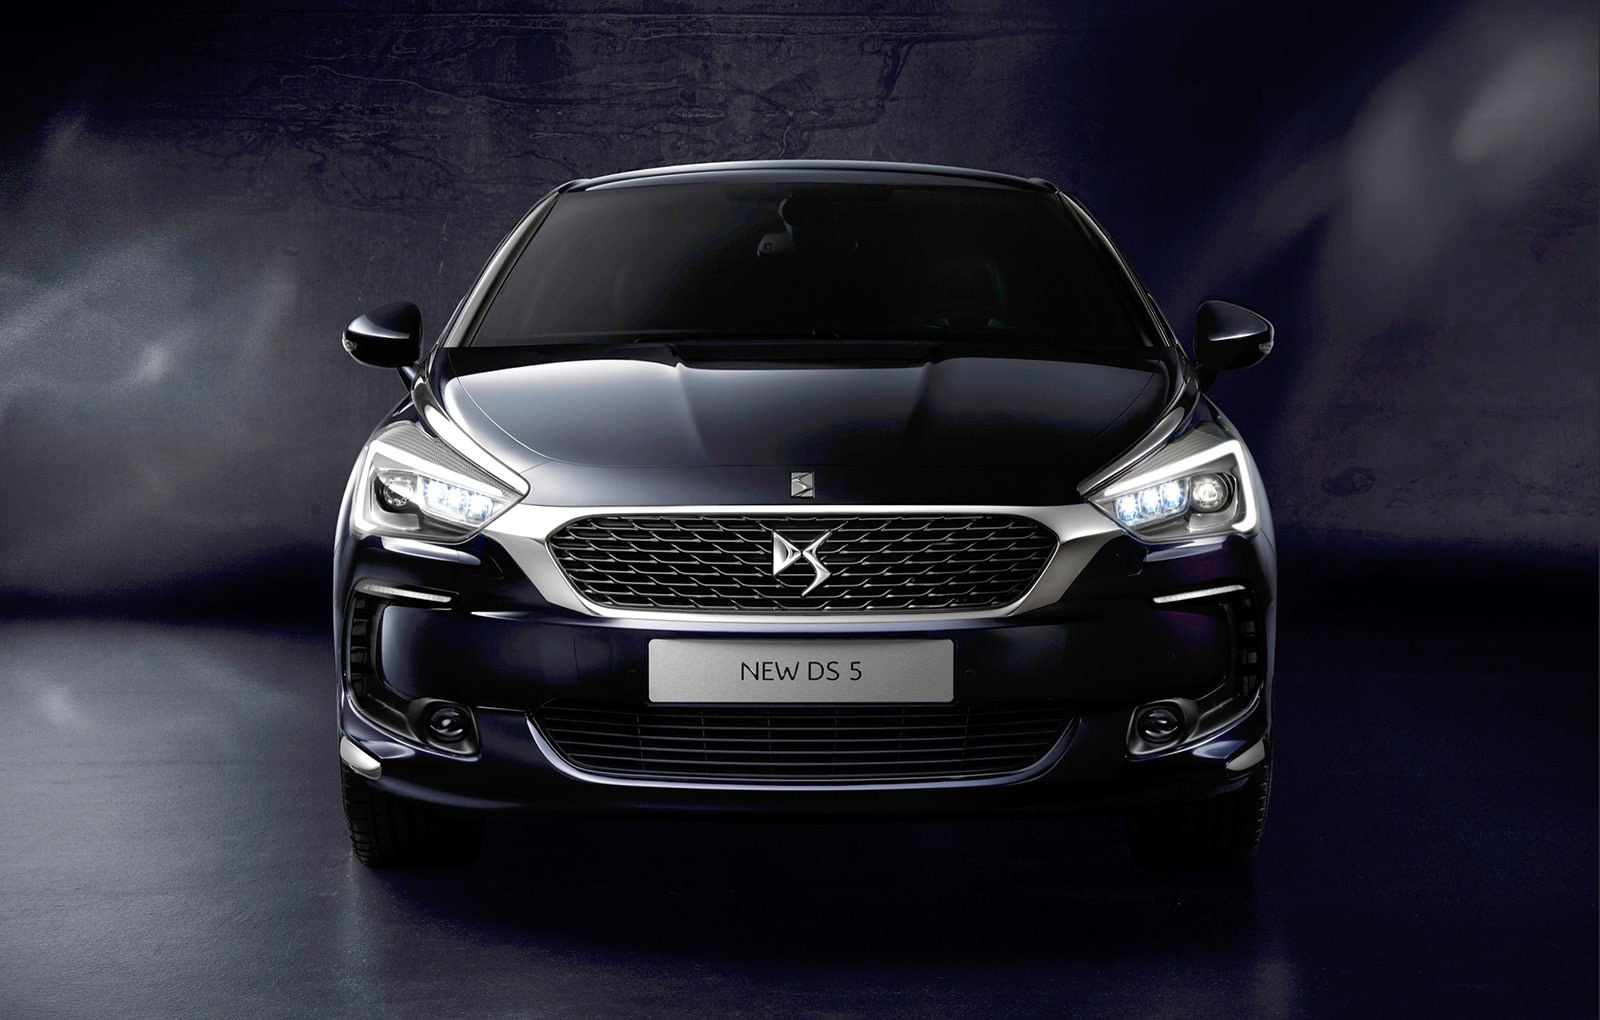 New-Citroen-DS5-02 (1)